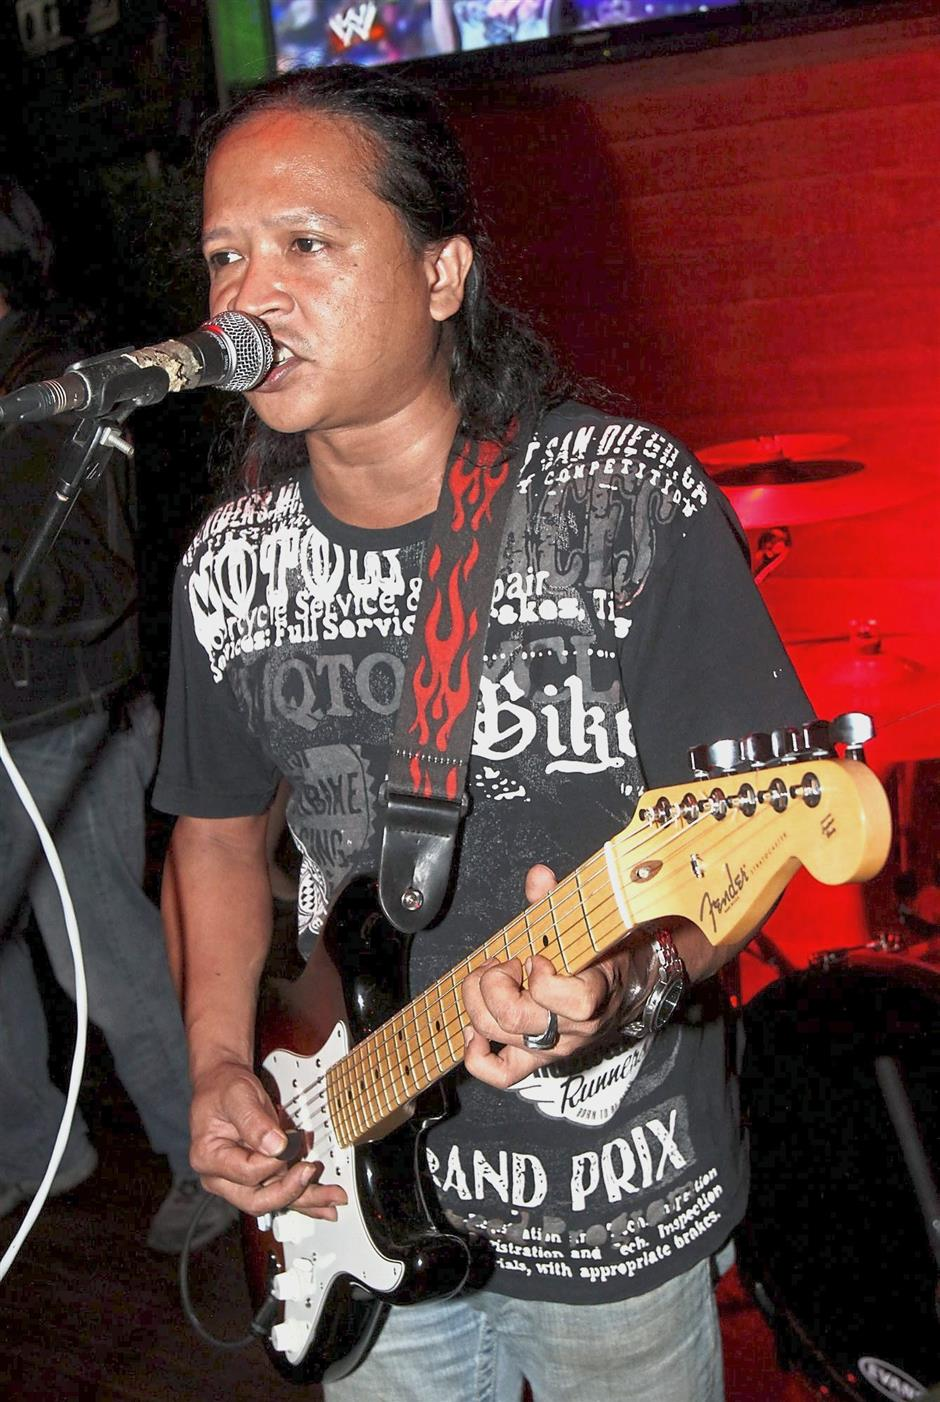 Sharin has a busy week as usual, tearing up the stage with his signature hard rock vibe.